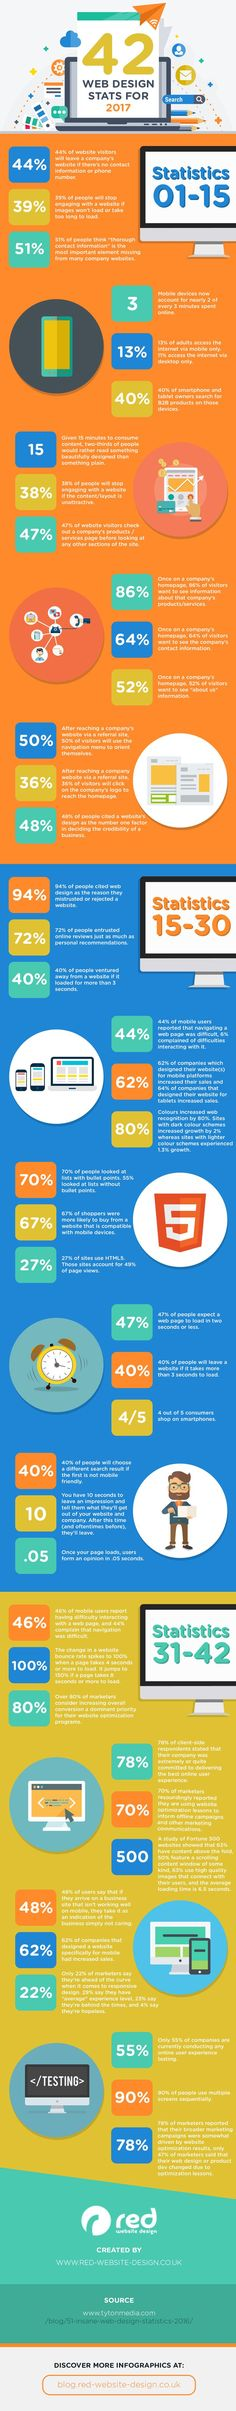 42 #WebDesign Stats to Guide Your 2017 Strategy #Infographic #Marketing #Business #Startup